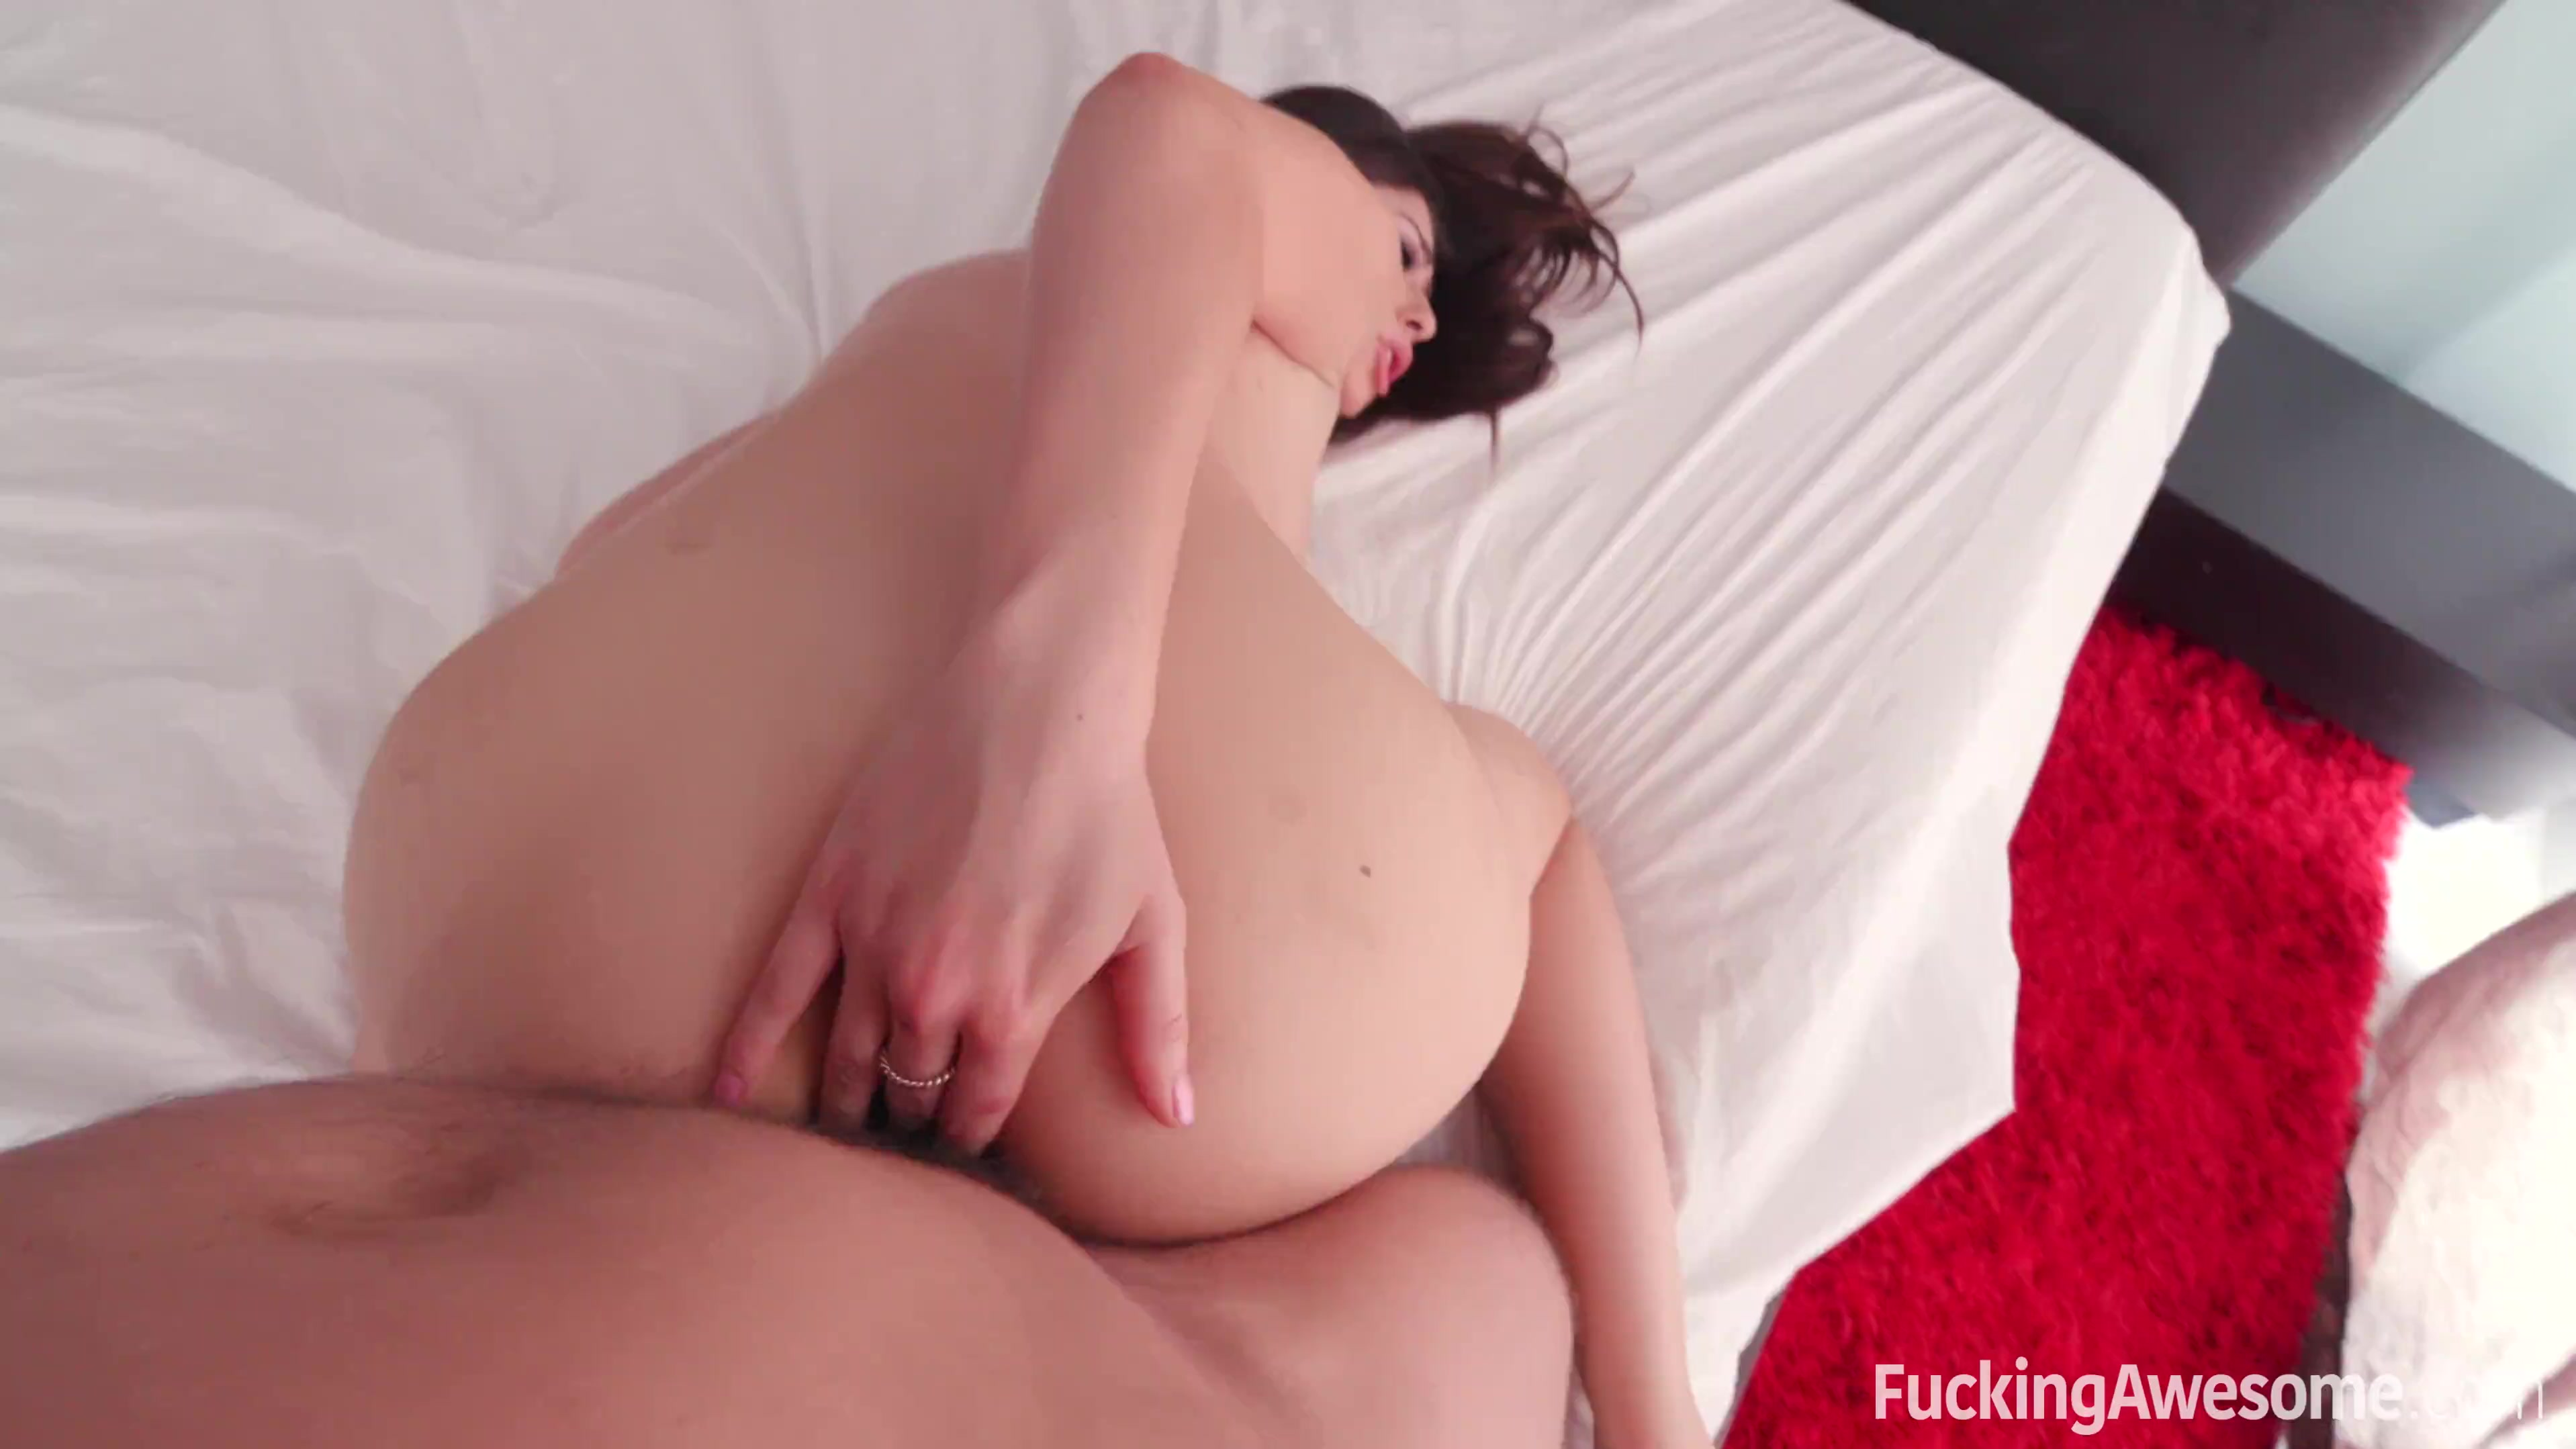 Films day melissa moore shoots pov for fucking awesome